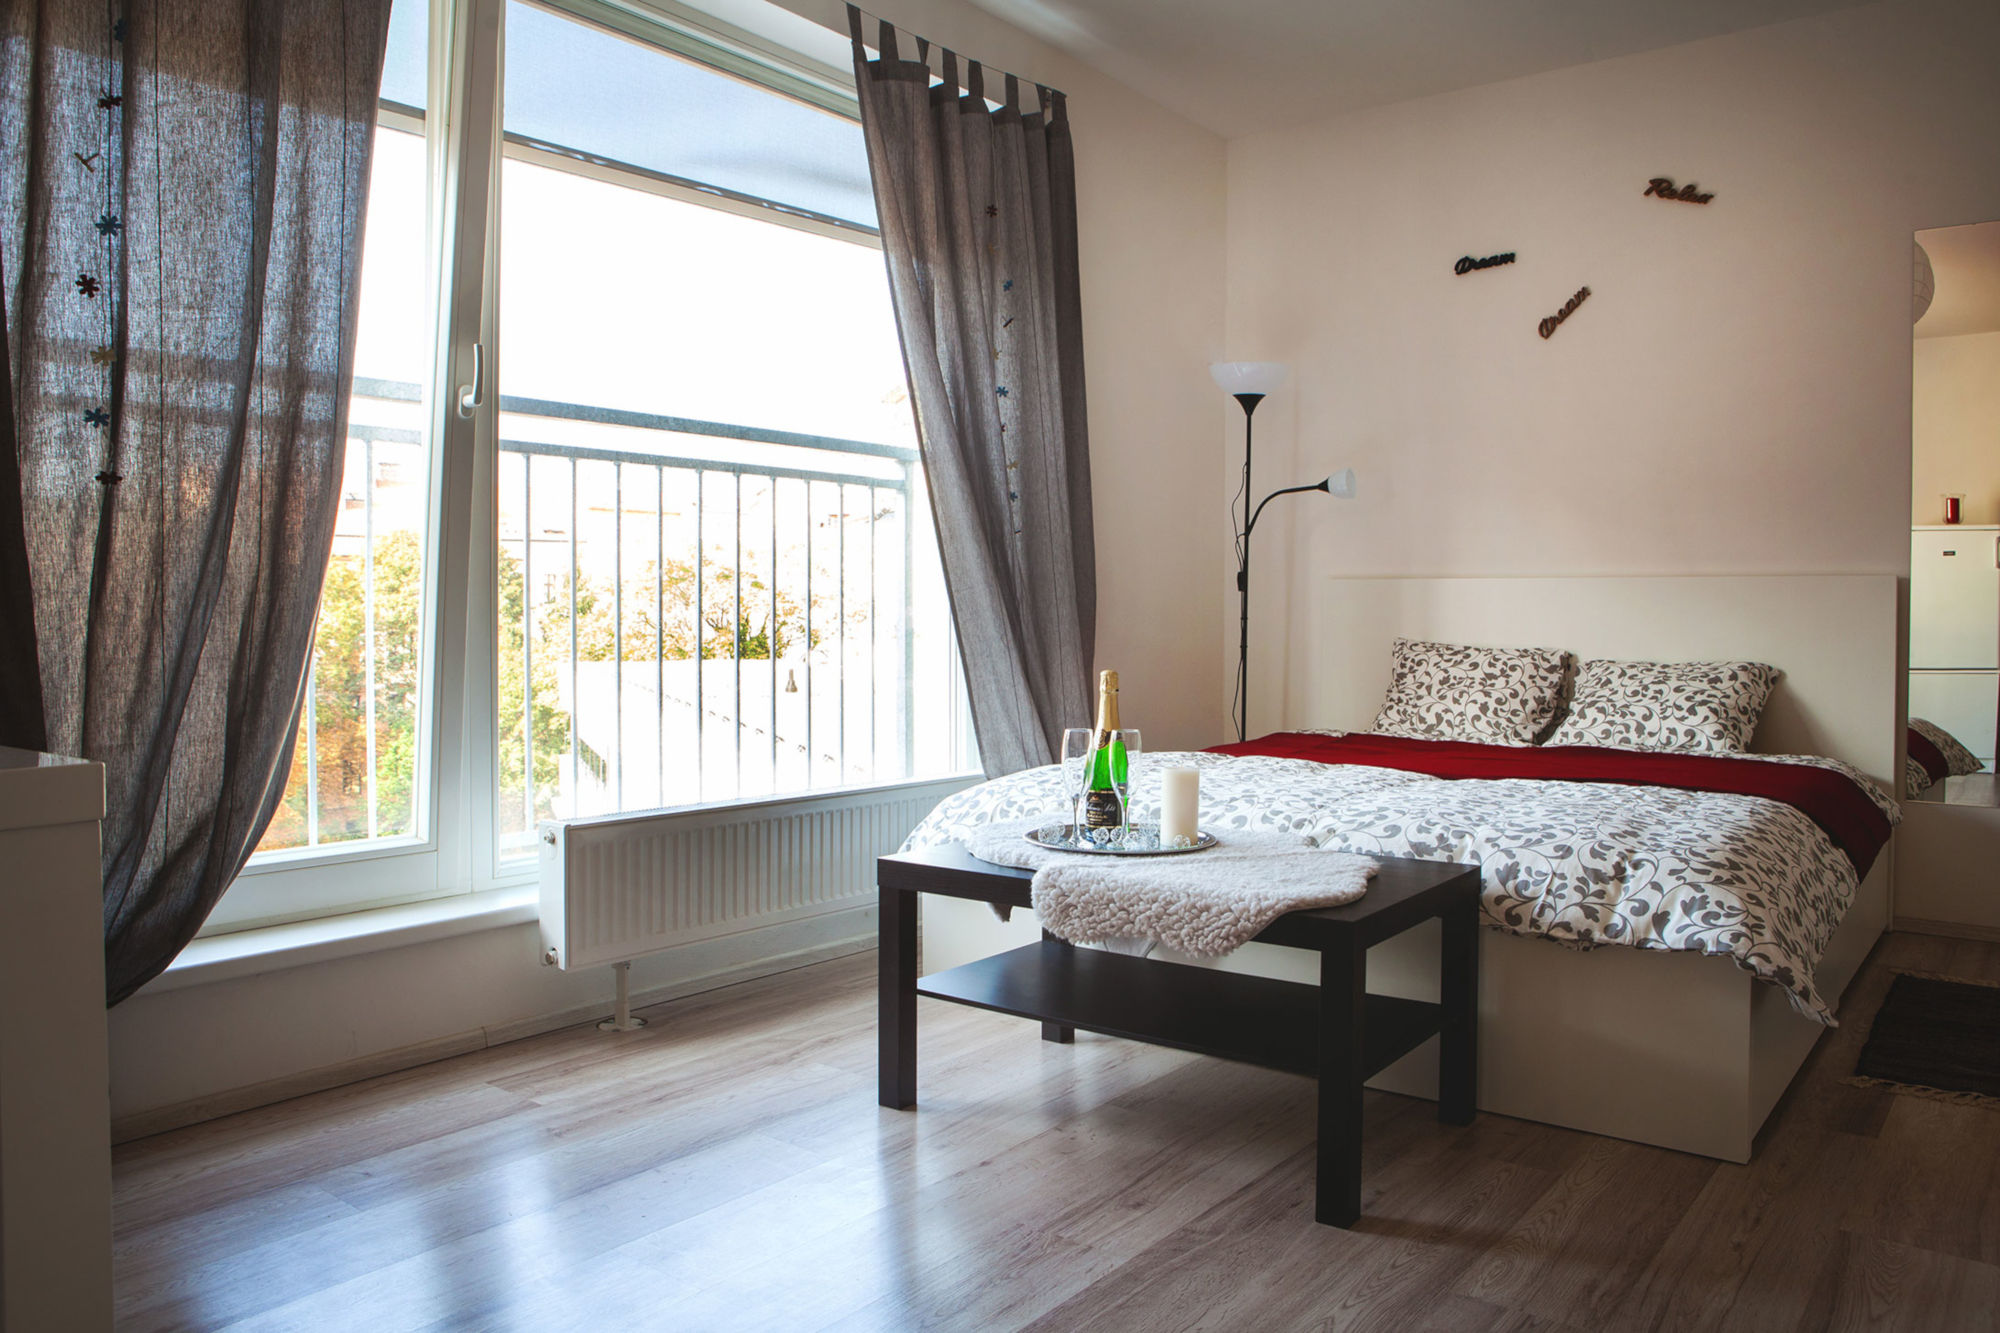 Spacious studio apartment Brno - bed